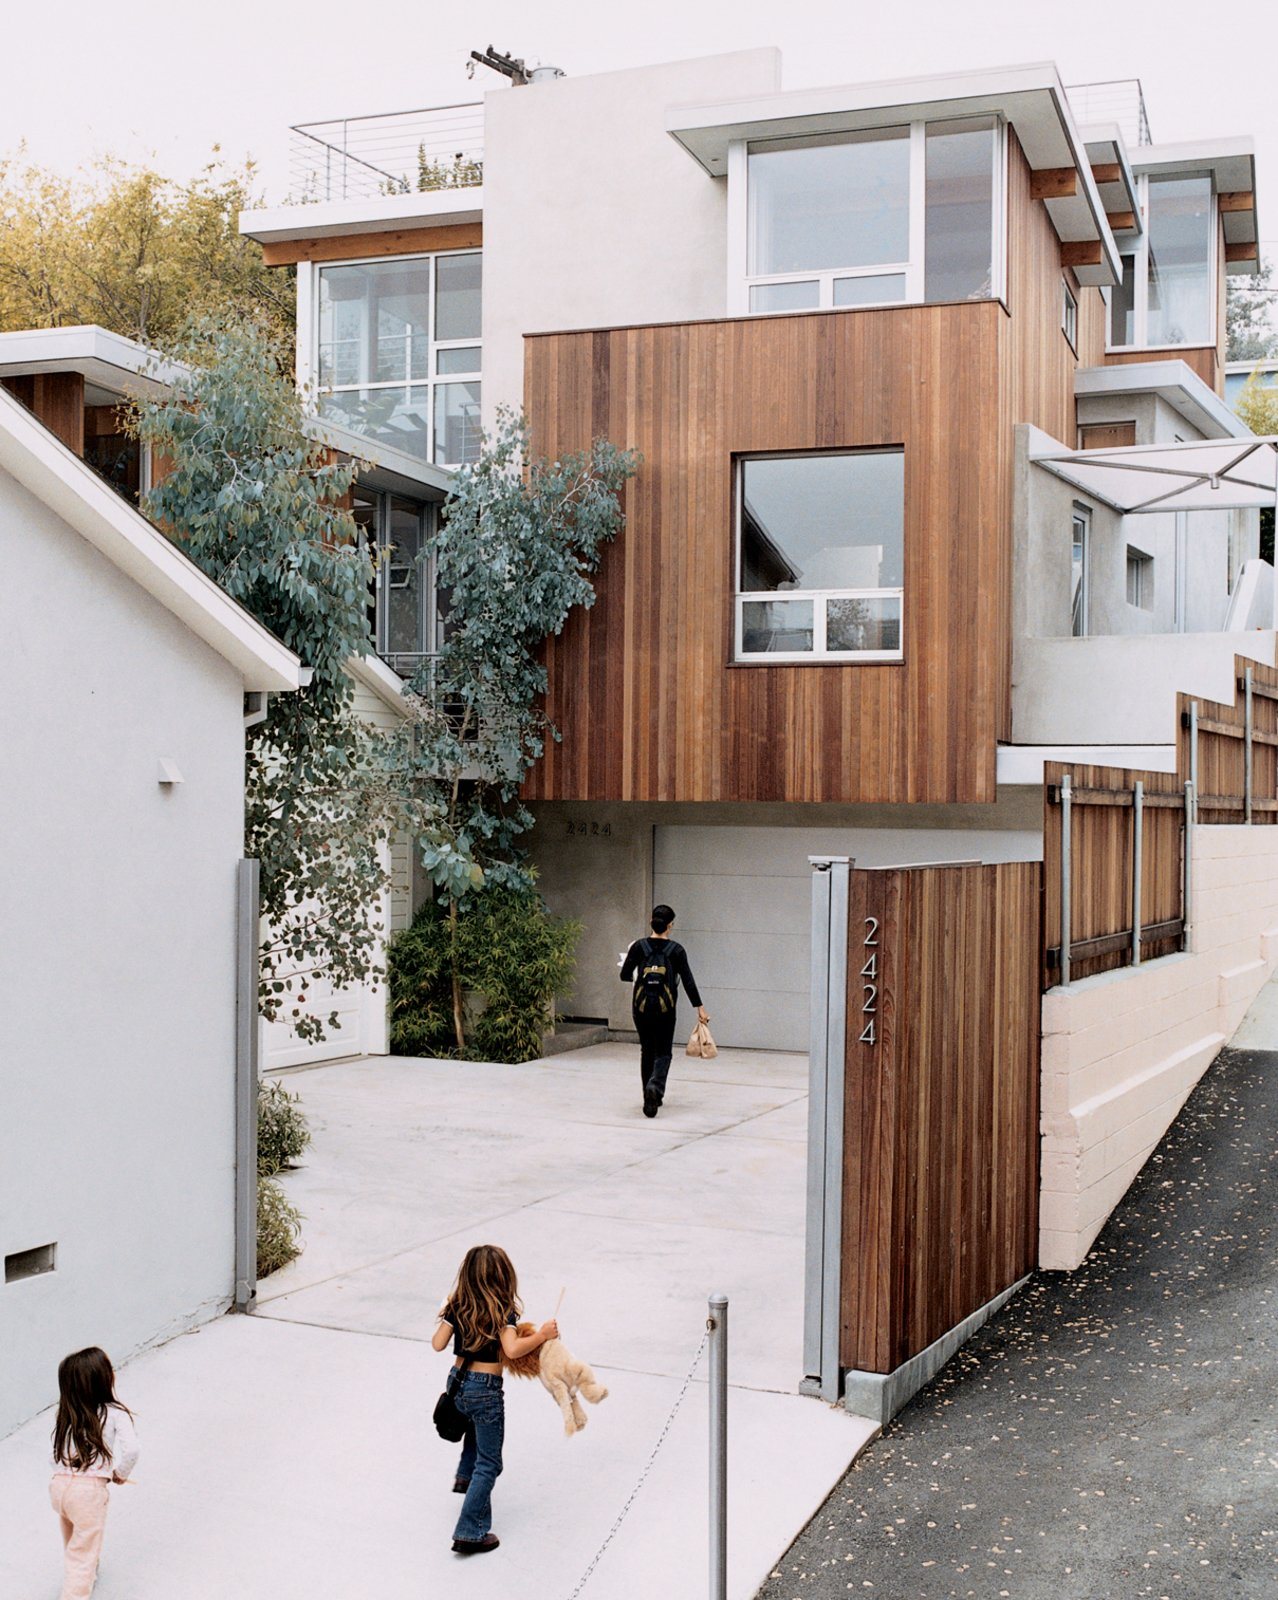 Photo 8 of 8 in 8 Modern Driveways